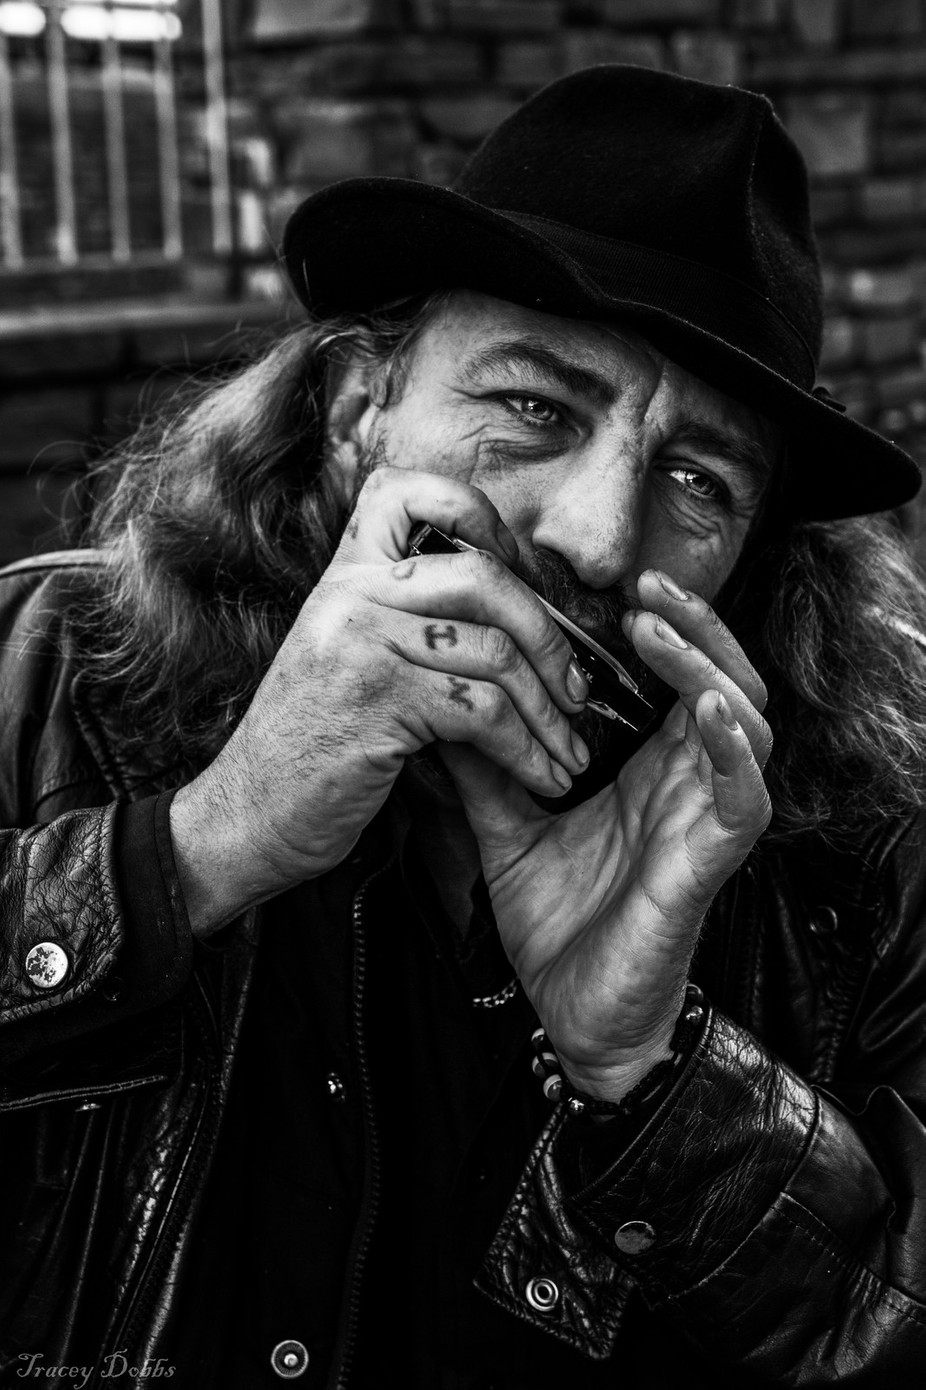 Street portrait by traceydobbs - People In The City Photo Contest